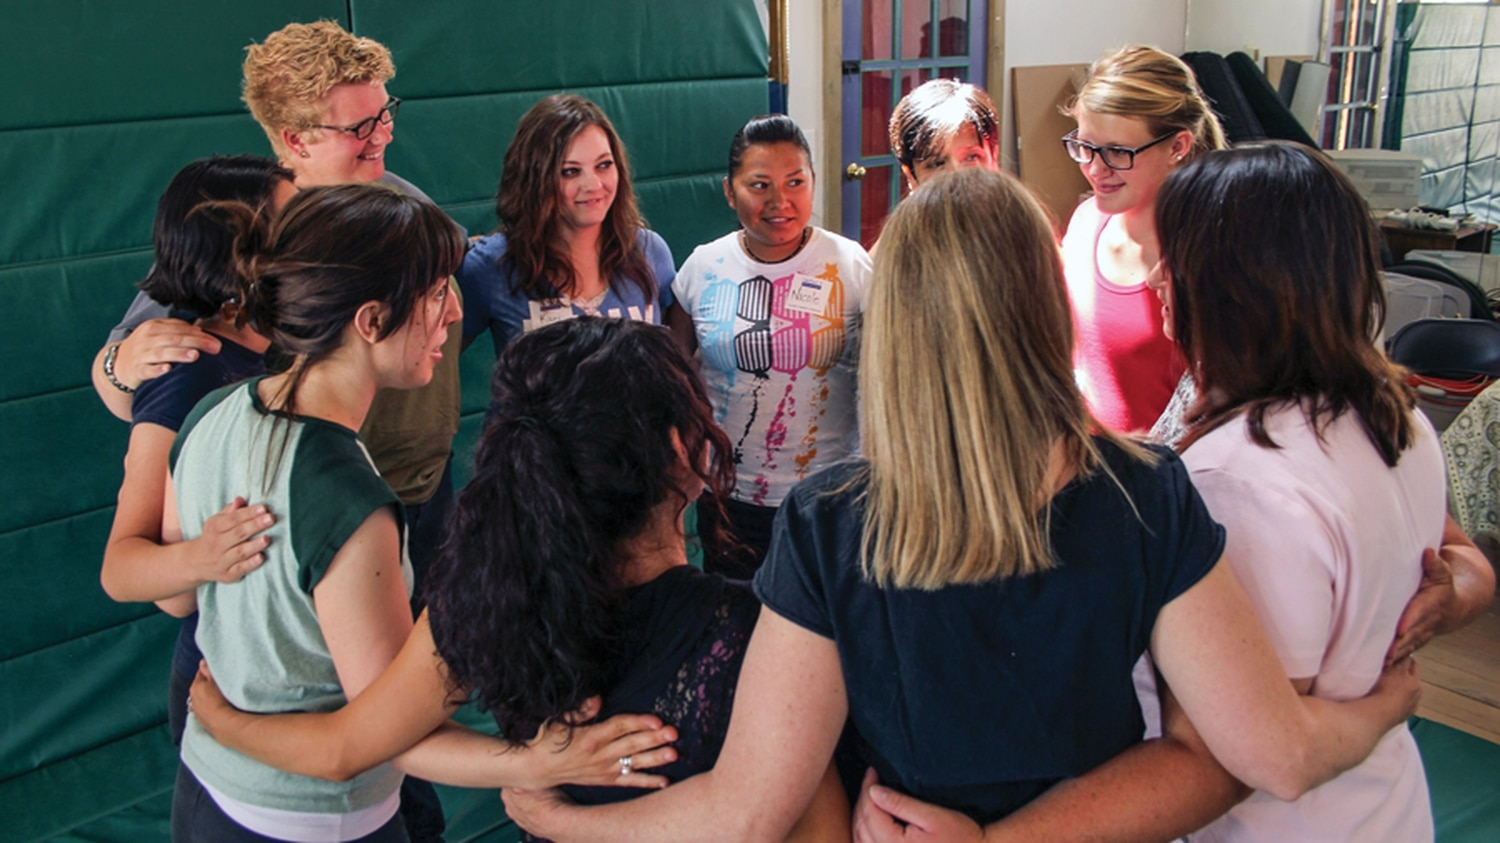 Resolve students circle up before, during, and after classes to reinforce a feeling of community.